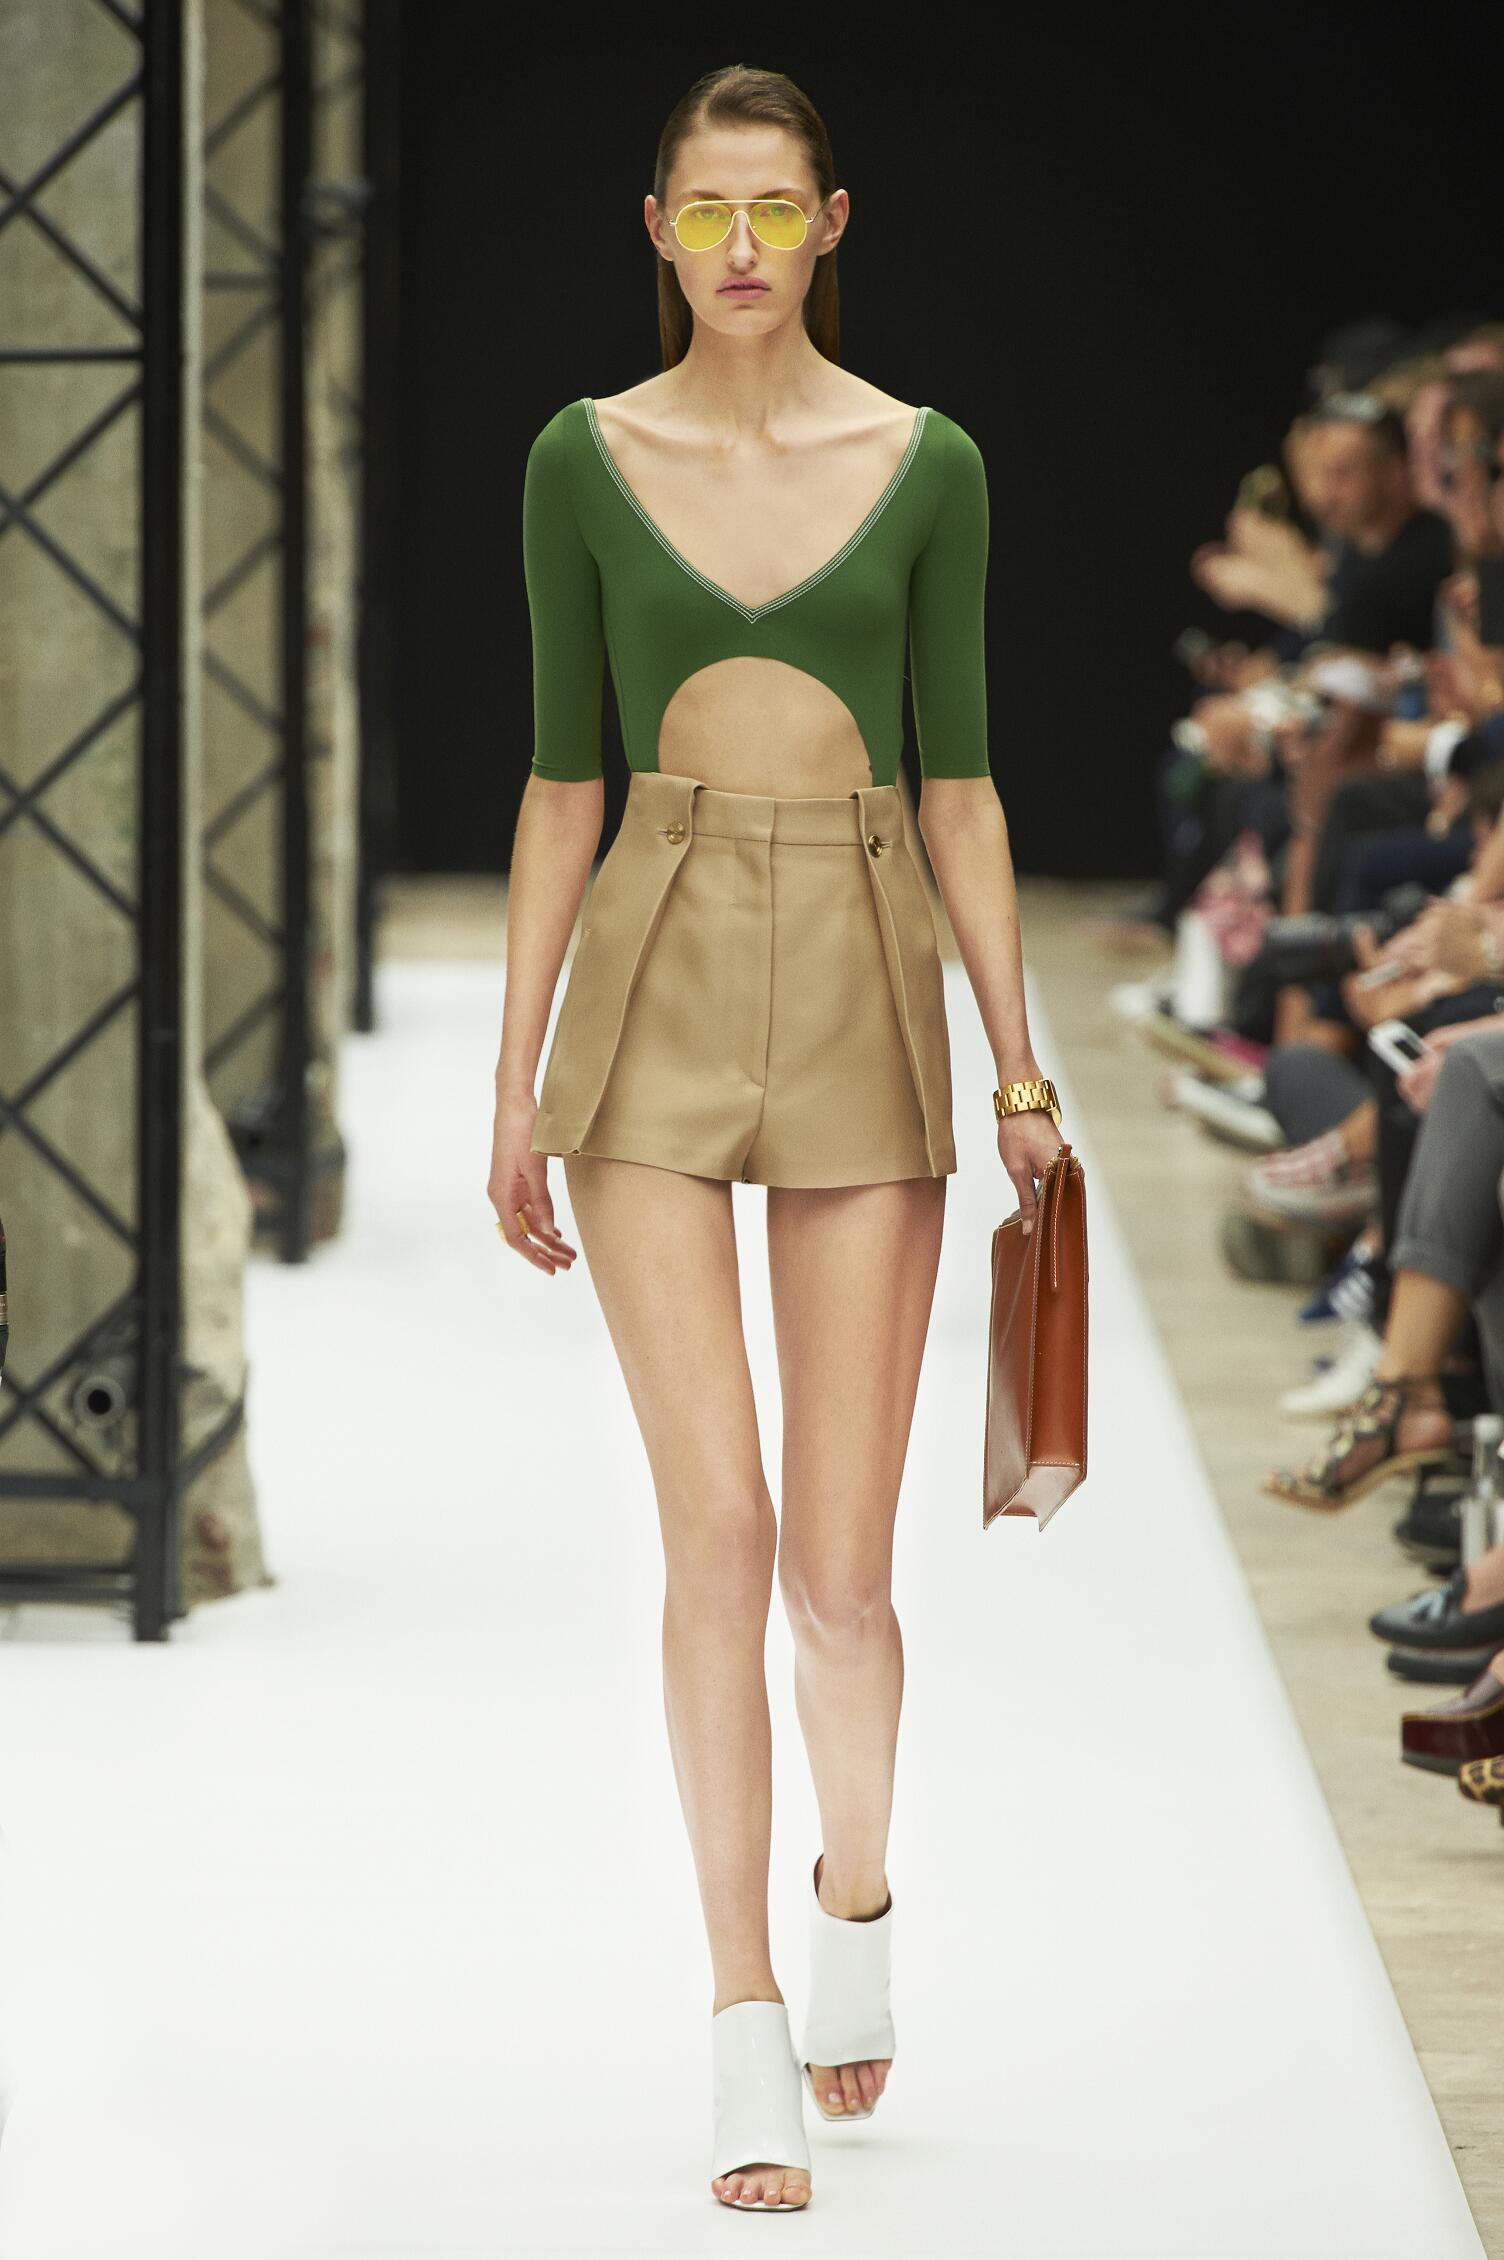 Fashion Woman Model Acne Studios Catwalk